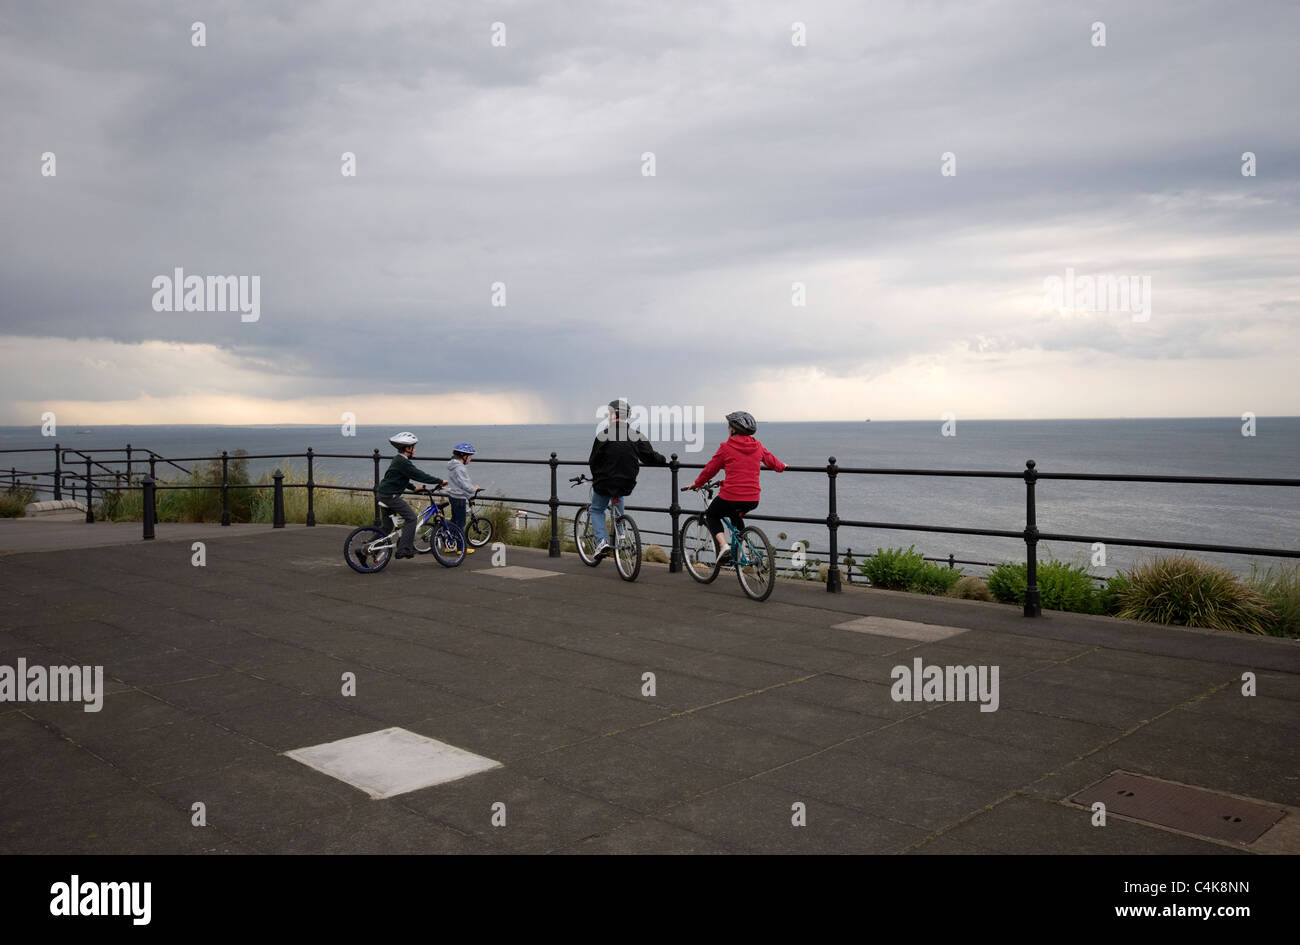 Family on cycles wearing safety helmets watching storm clouds over sea at Saltburn, Cleveland, UK - Stock Image